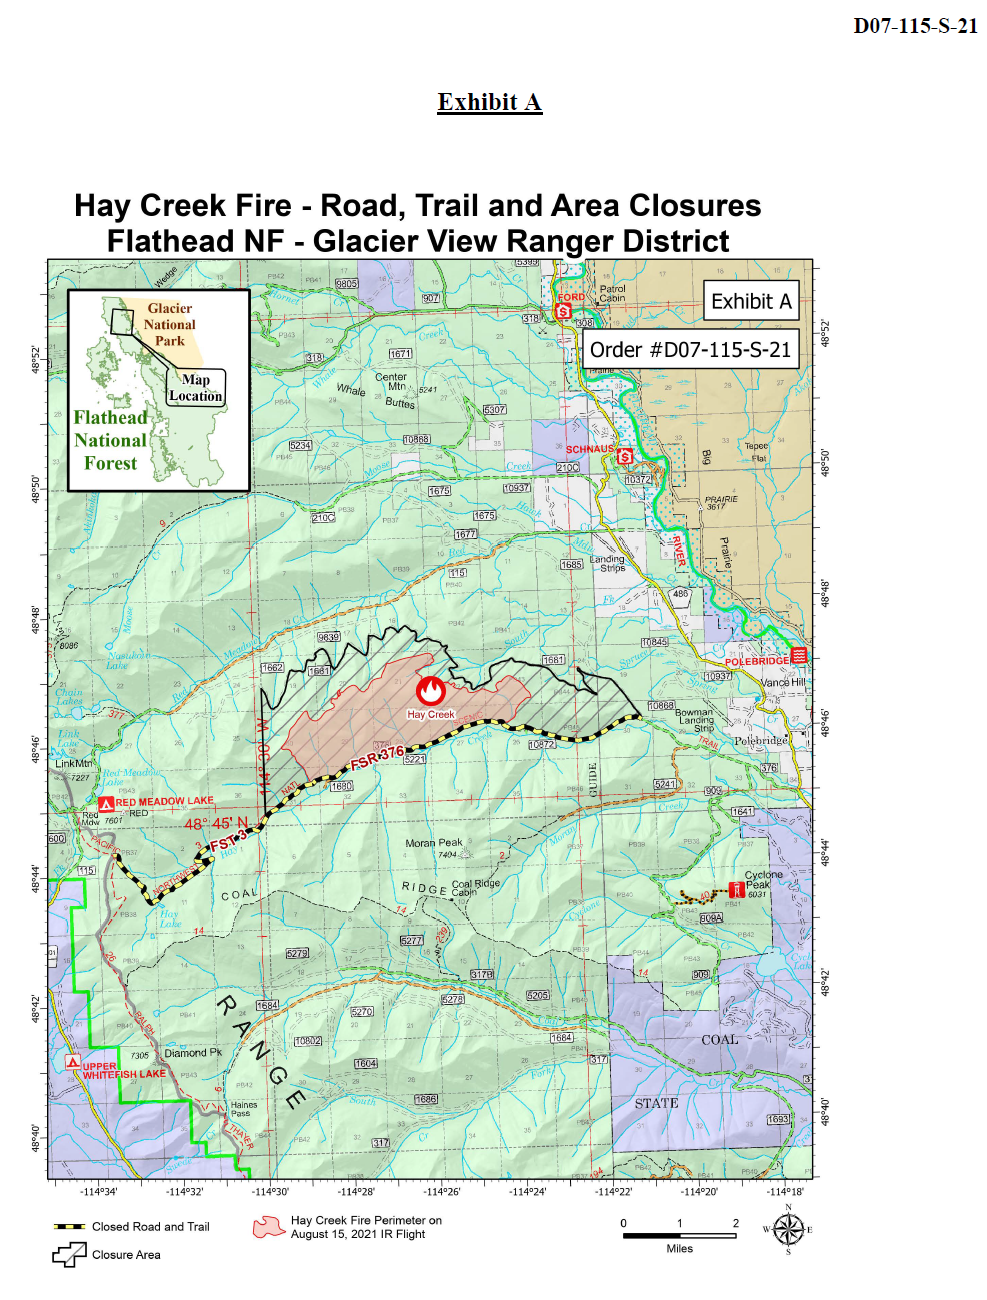 Hay Creek Fire - Road, Trail and Area Closures, August 23, 2021